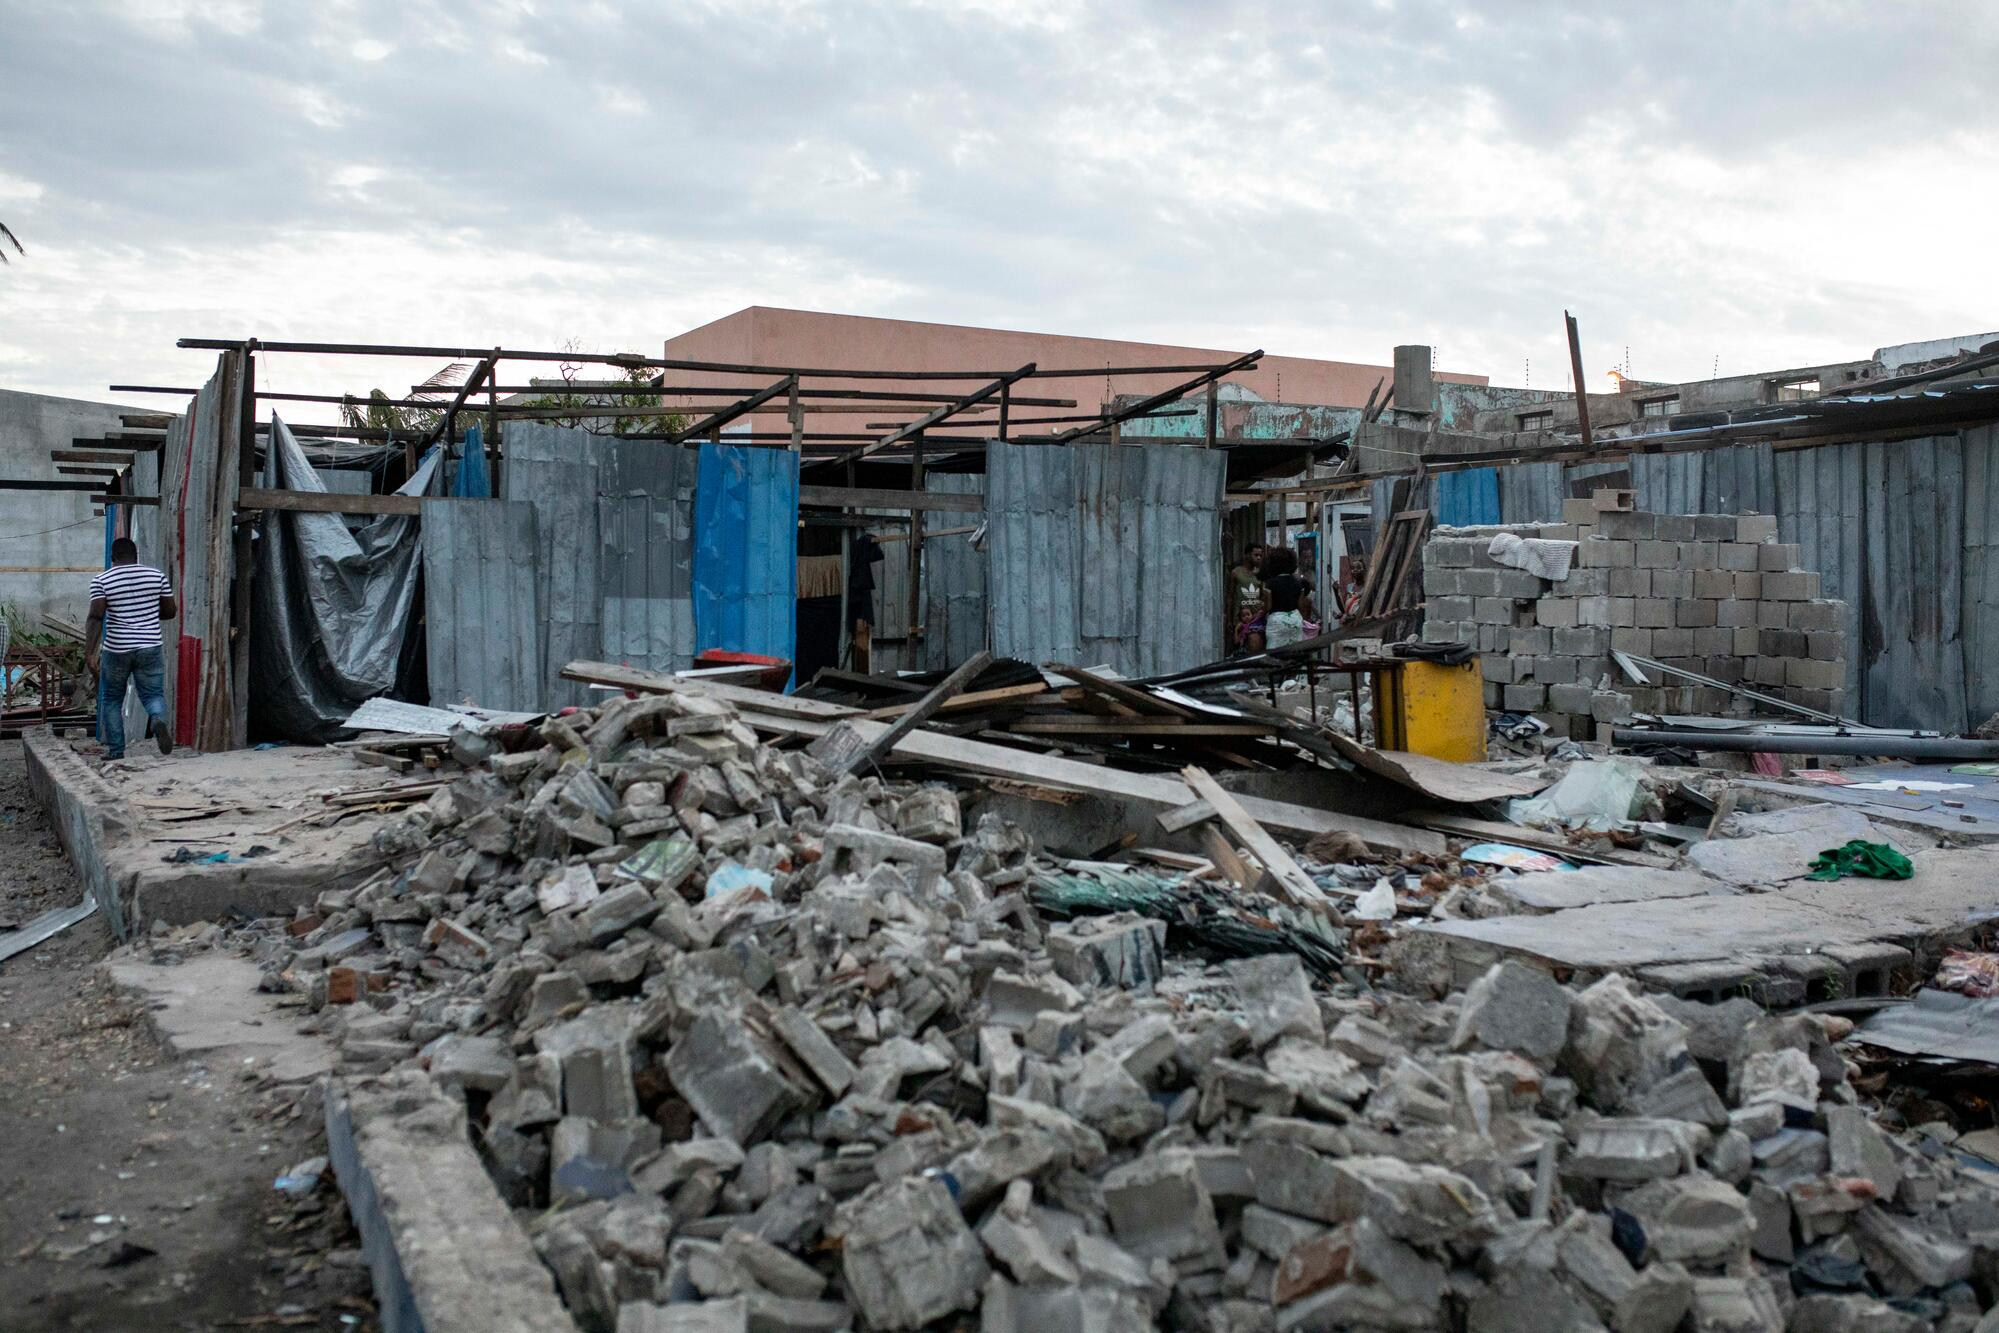 The brothel in Goto market in Beira, where MSF provides care to sex workers, was badly damaged by Cyclone Idai, meaning the sex